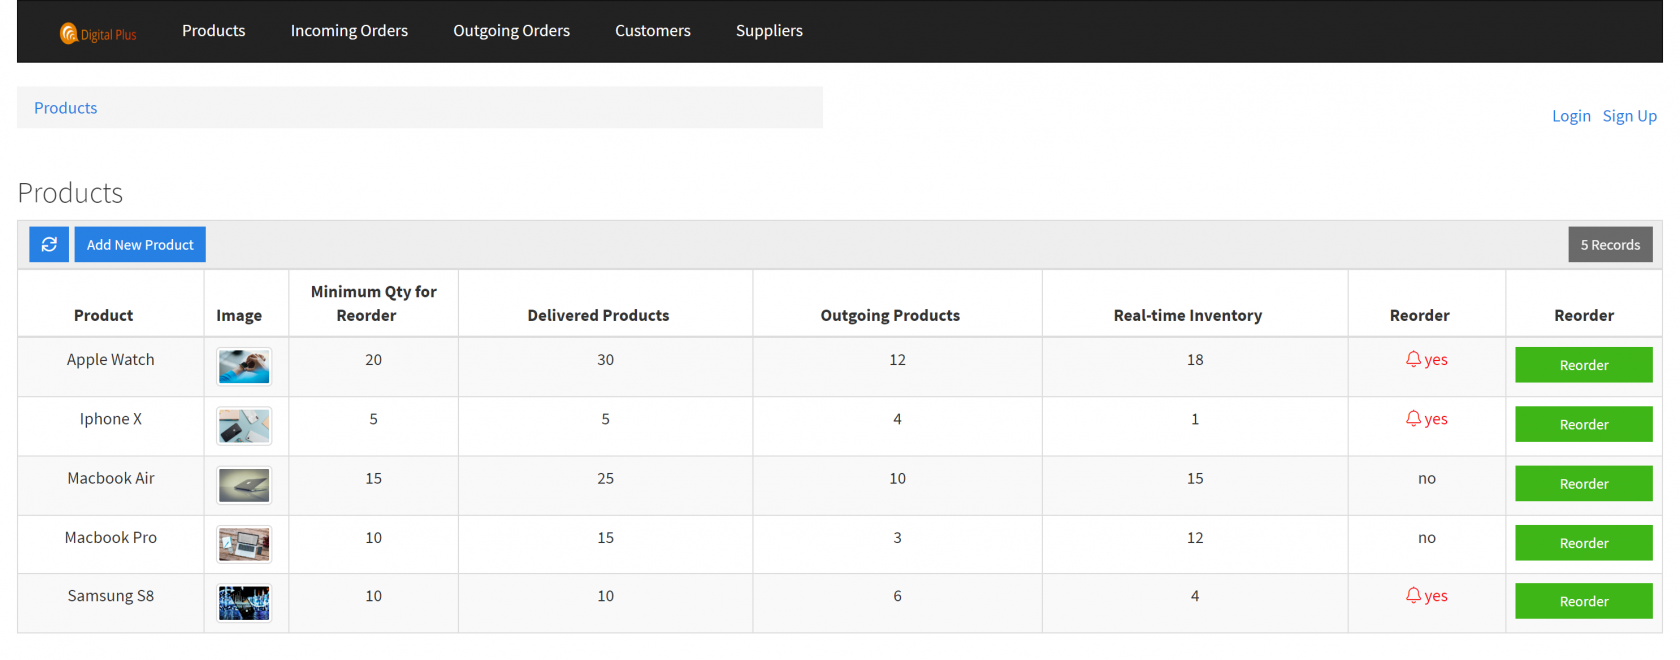 products-reorder.png